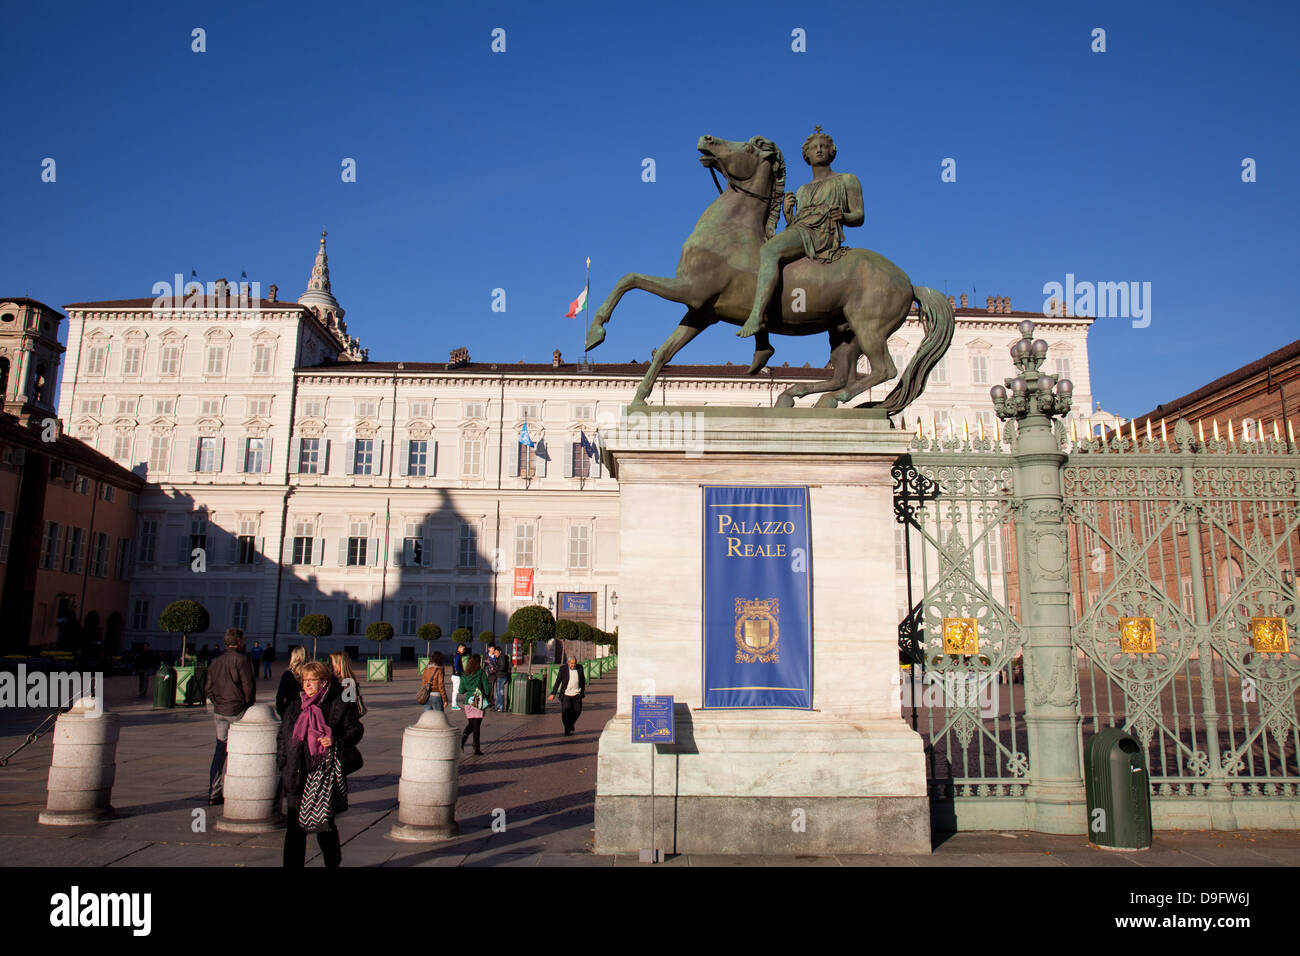 Pollux statue and the Royal Palace of Turin (Palazzo Reale), Turin, Piedmont, Italy Stock Photo